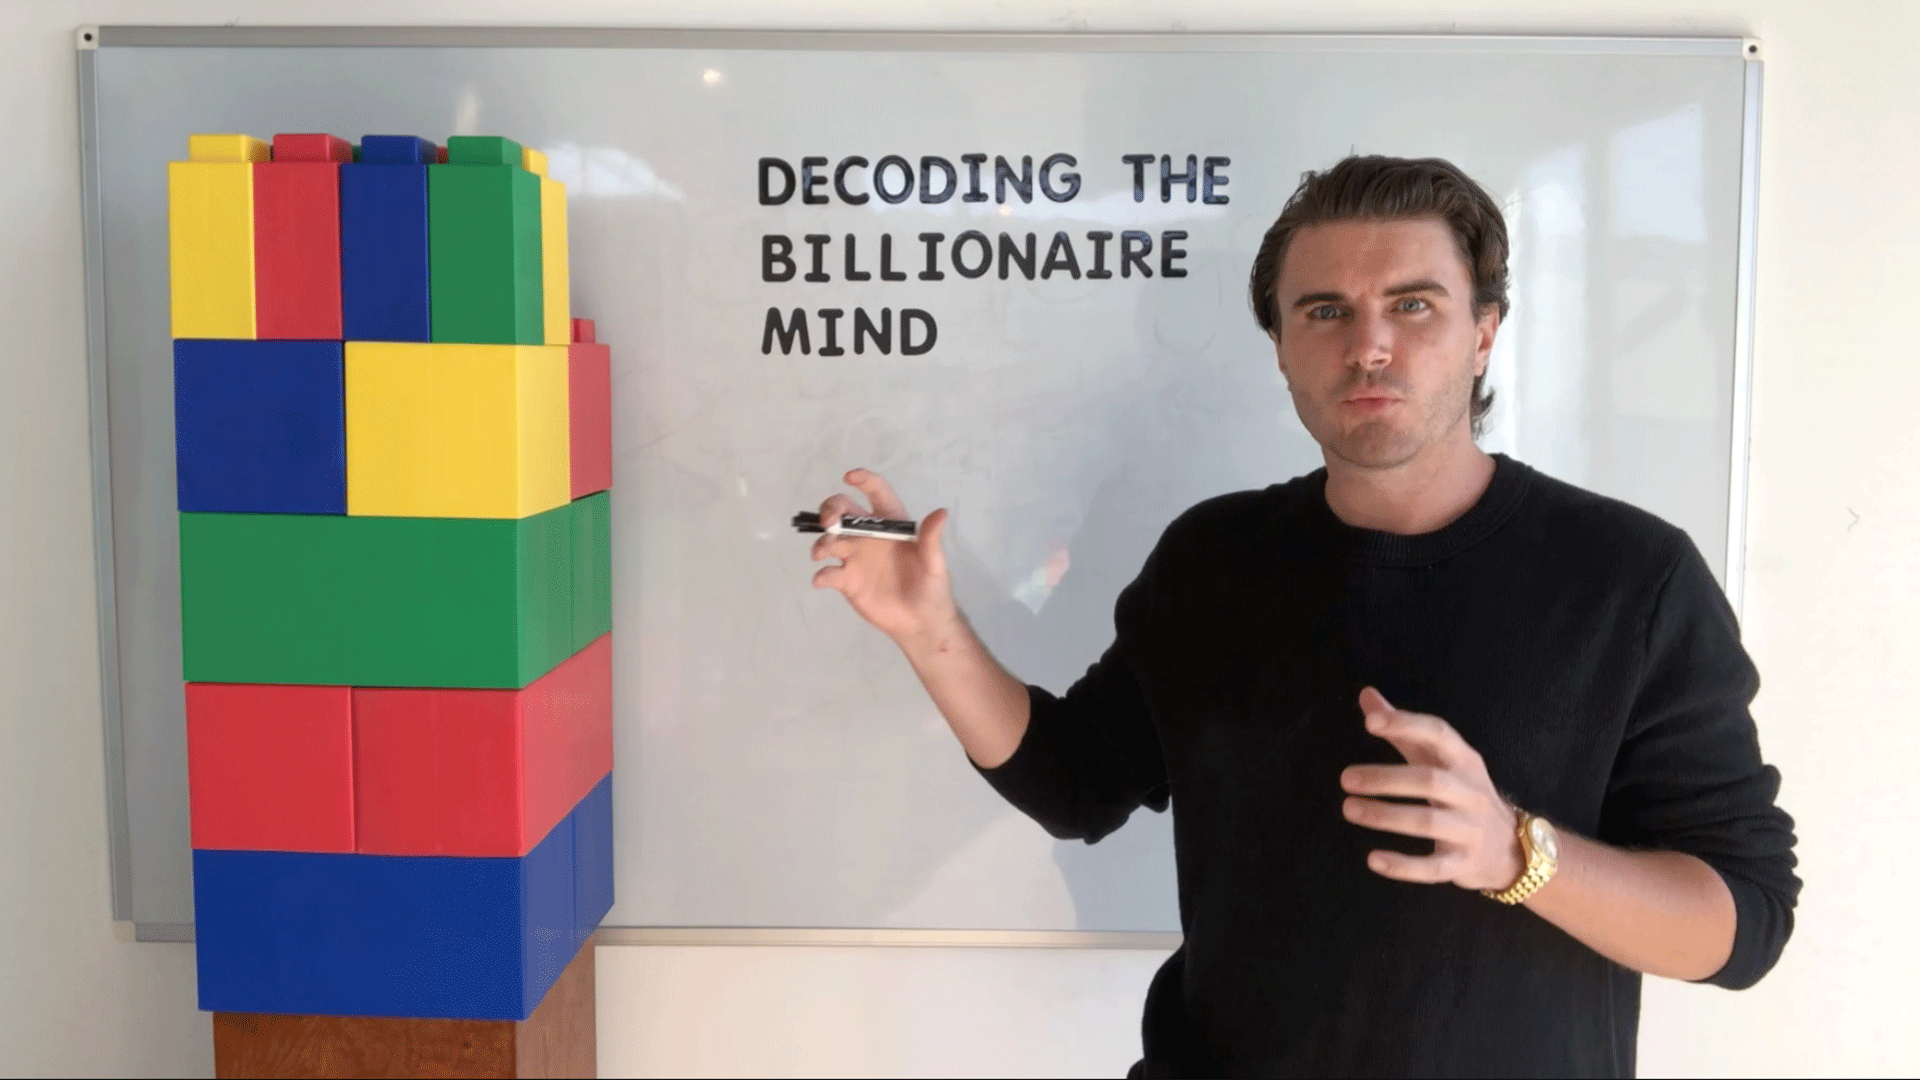 How Billionaires Think: Decoding The Billionaire Mind